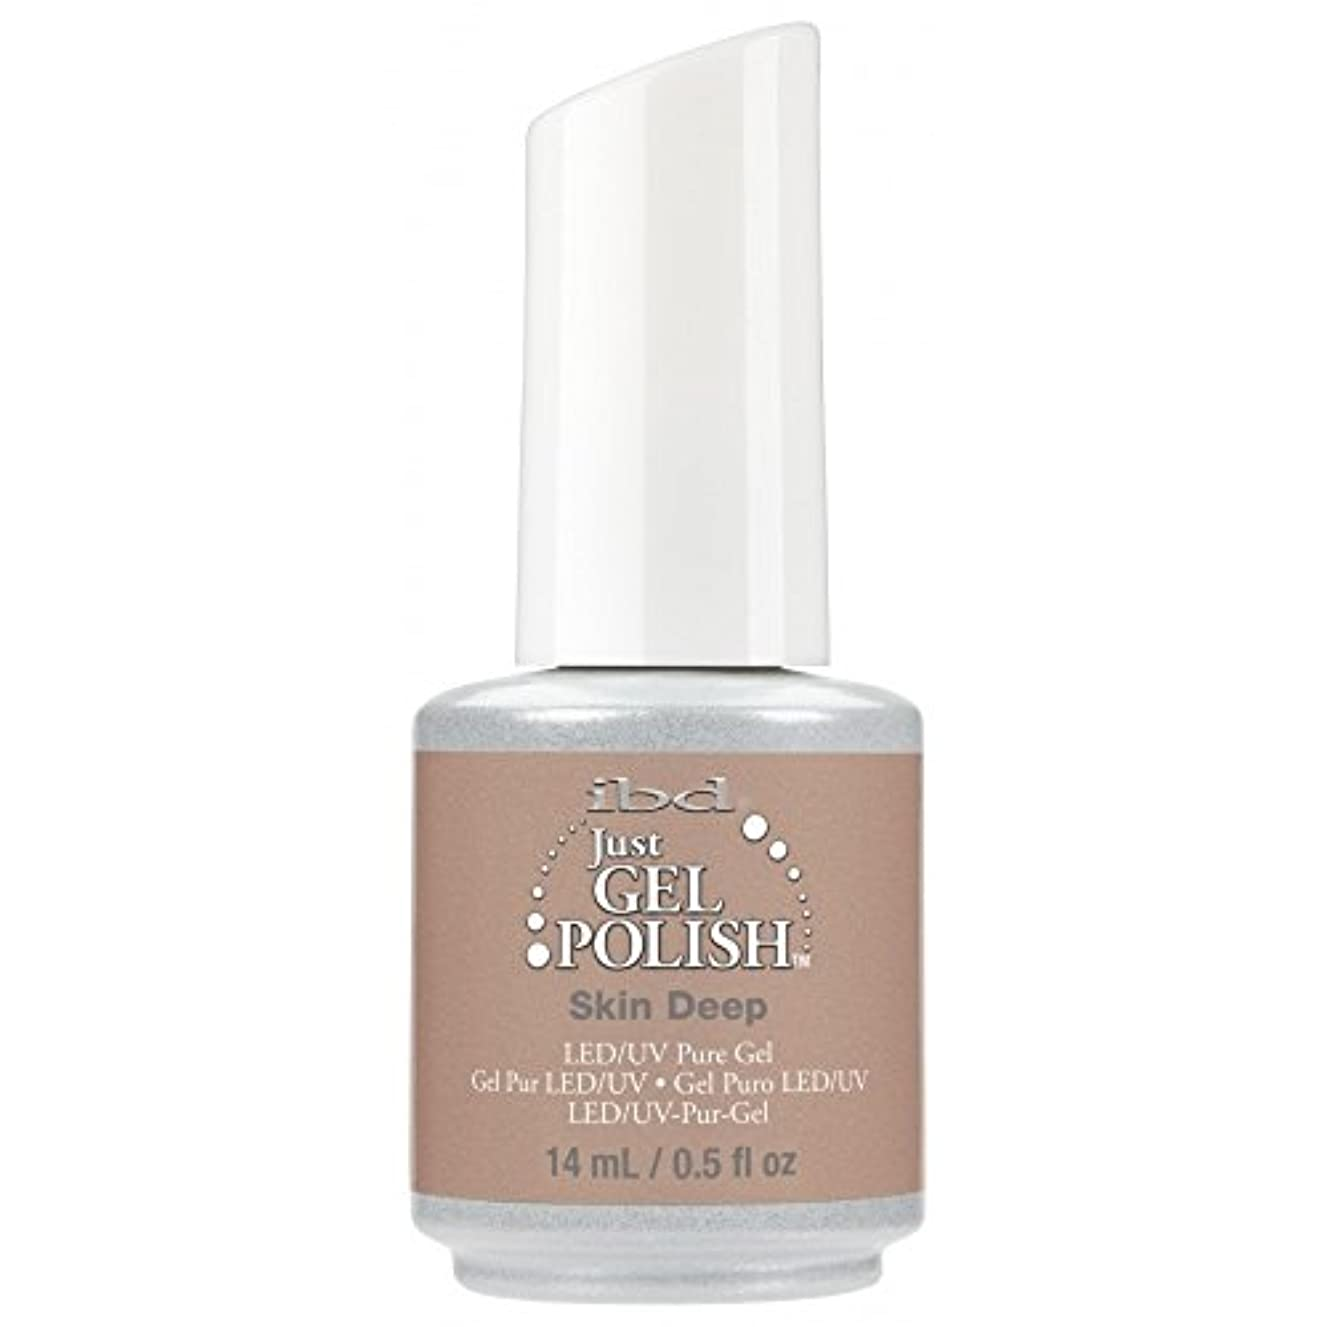 酸いつオークランドibd Just Gel Nail Polish - 2017 Nude Collection - Skin Deep - 14ml / 0.5oz